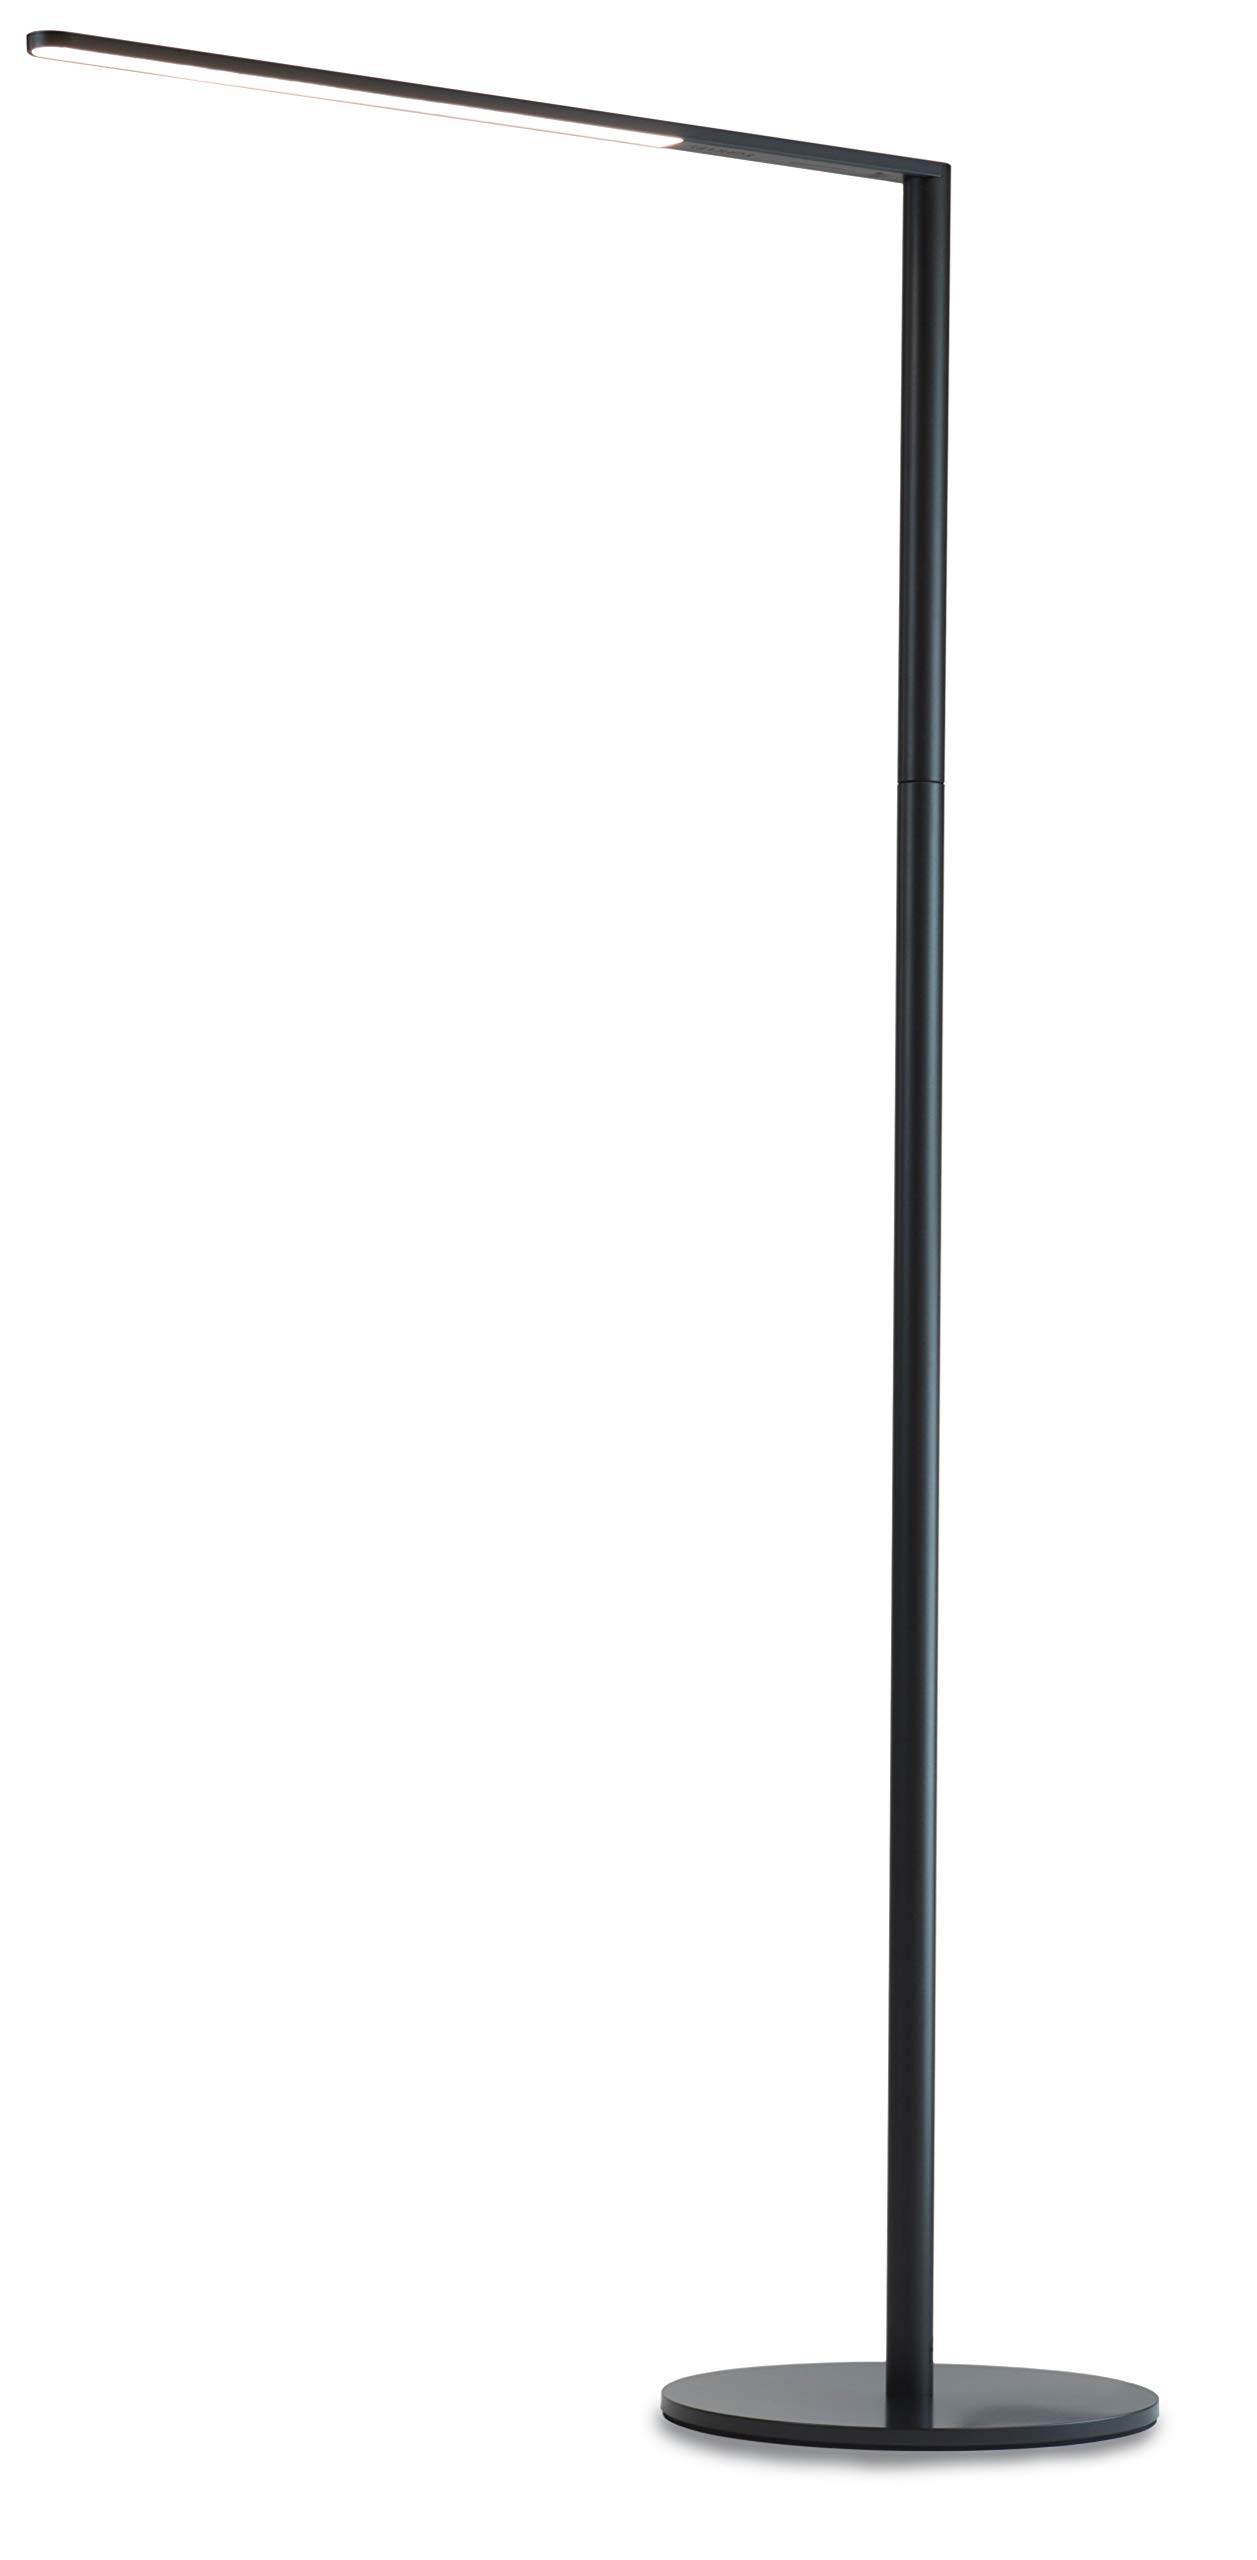 Koncept Lady 7 Floor Lamp with USB Charging Port in Metallic Black, L7-MBK-FLR by KONCEPT